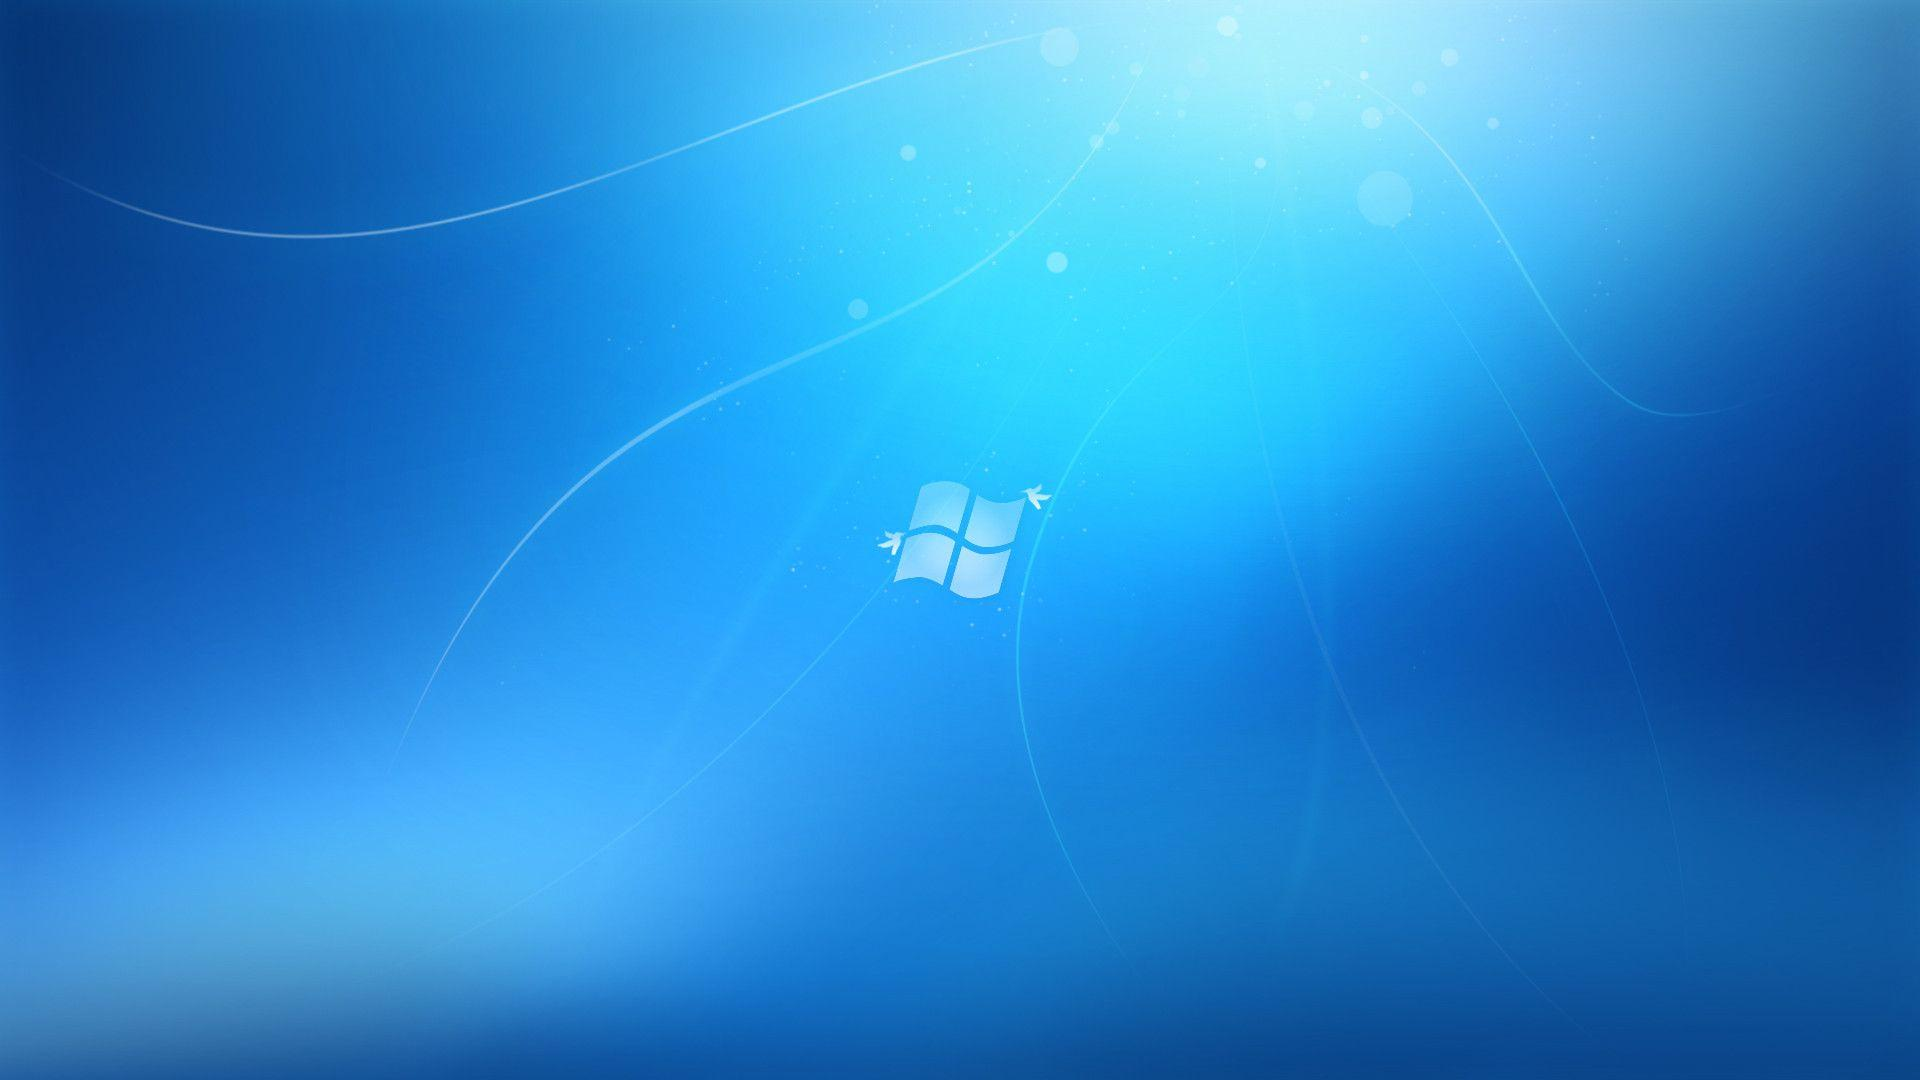 Windows 7 Blue 1080p HD Wallpapers | HD Wallpapers